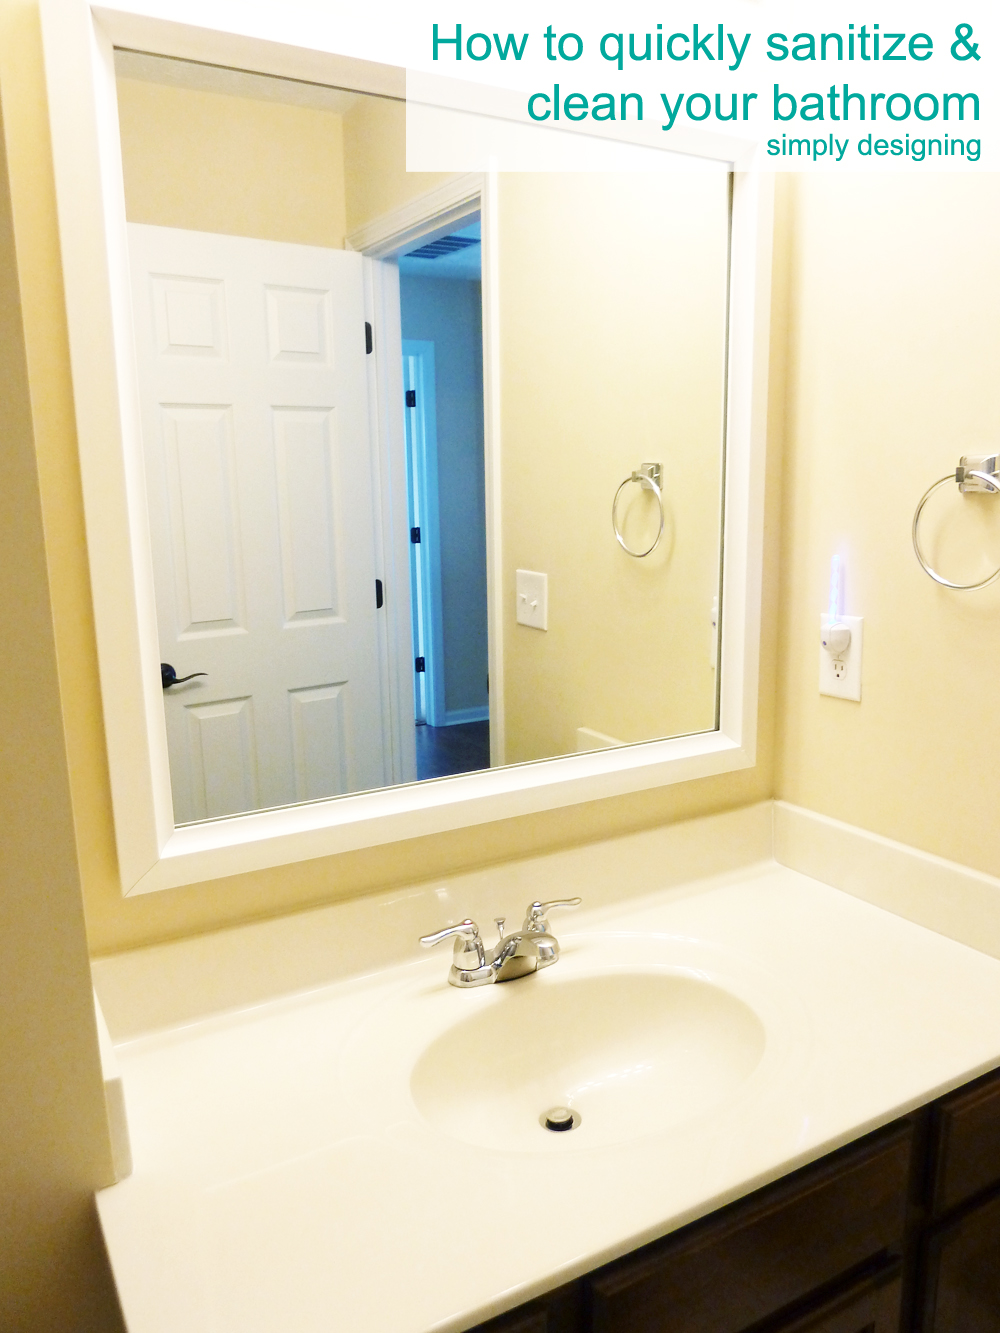 How to quickly sanitize and clean your bathroom without harsh chemicals | #cleaning  #naturalcleaning